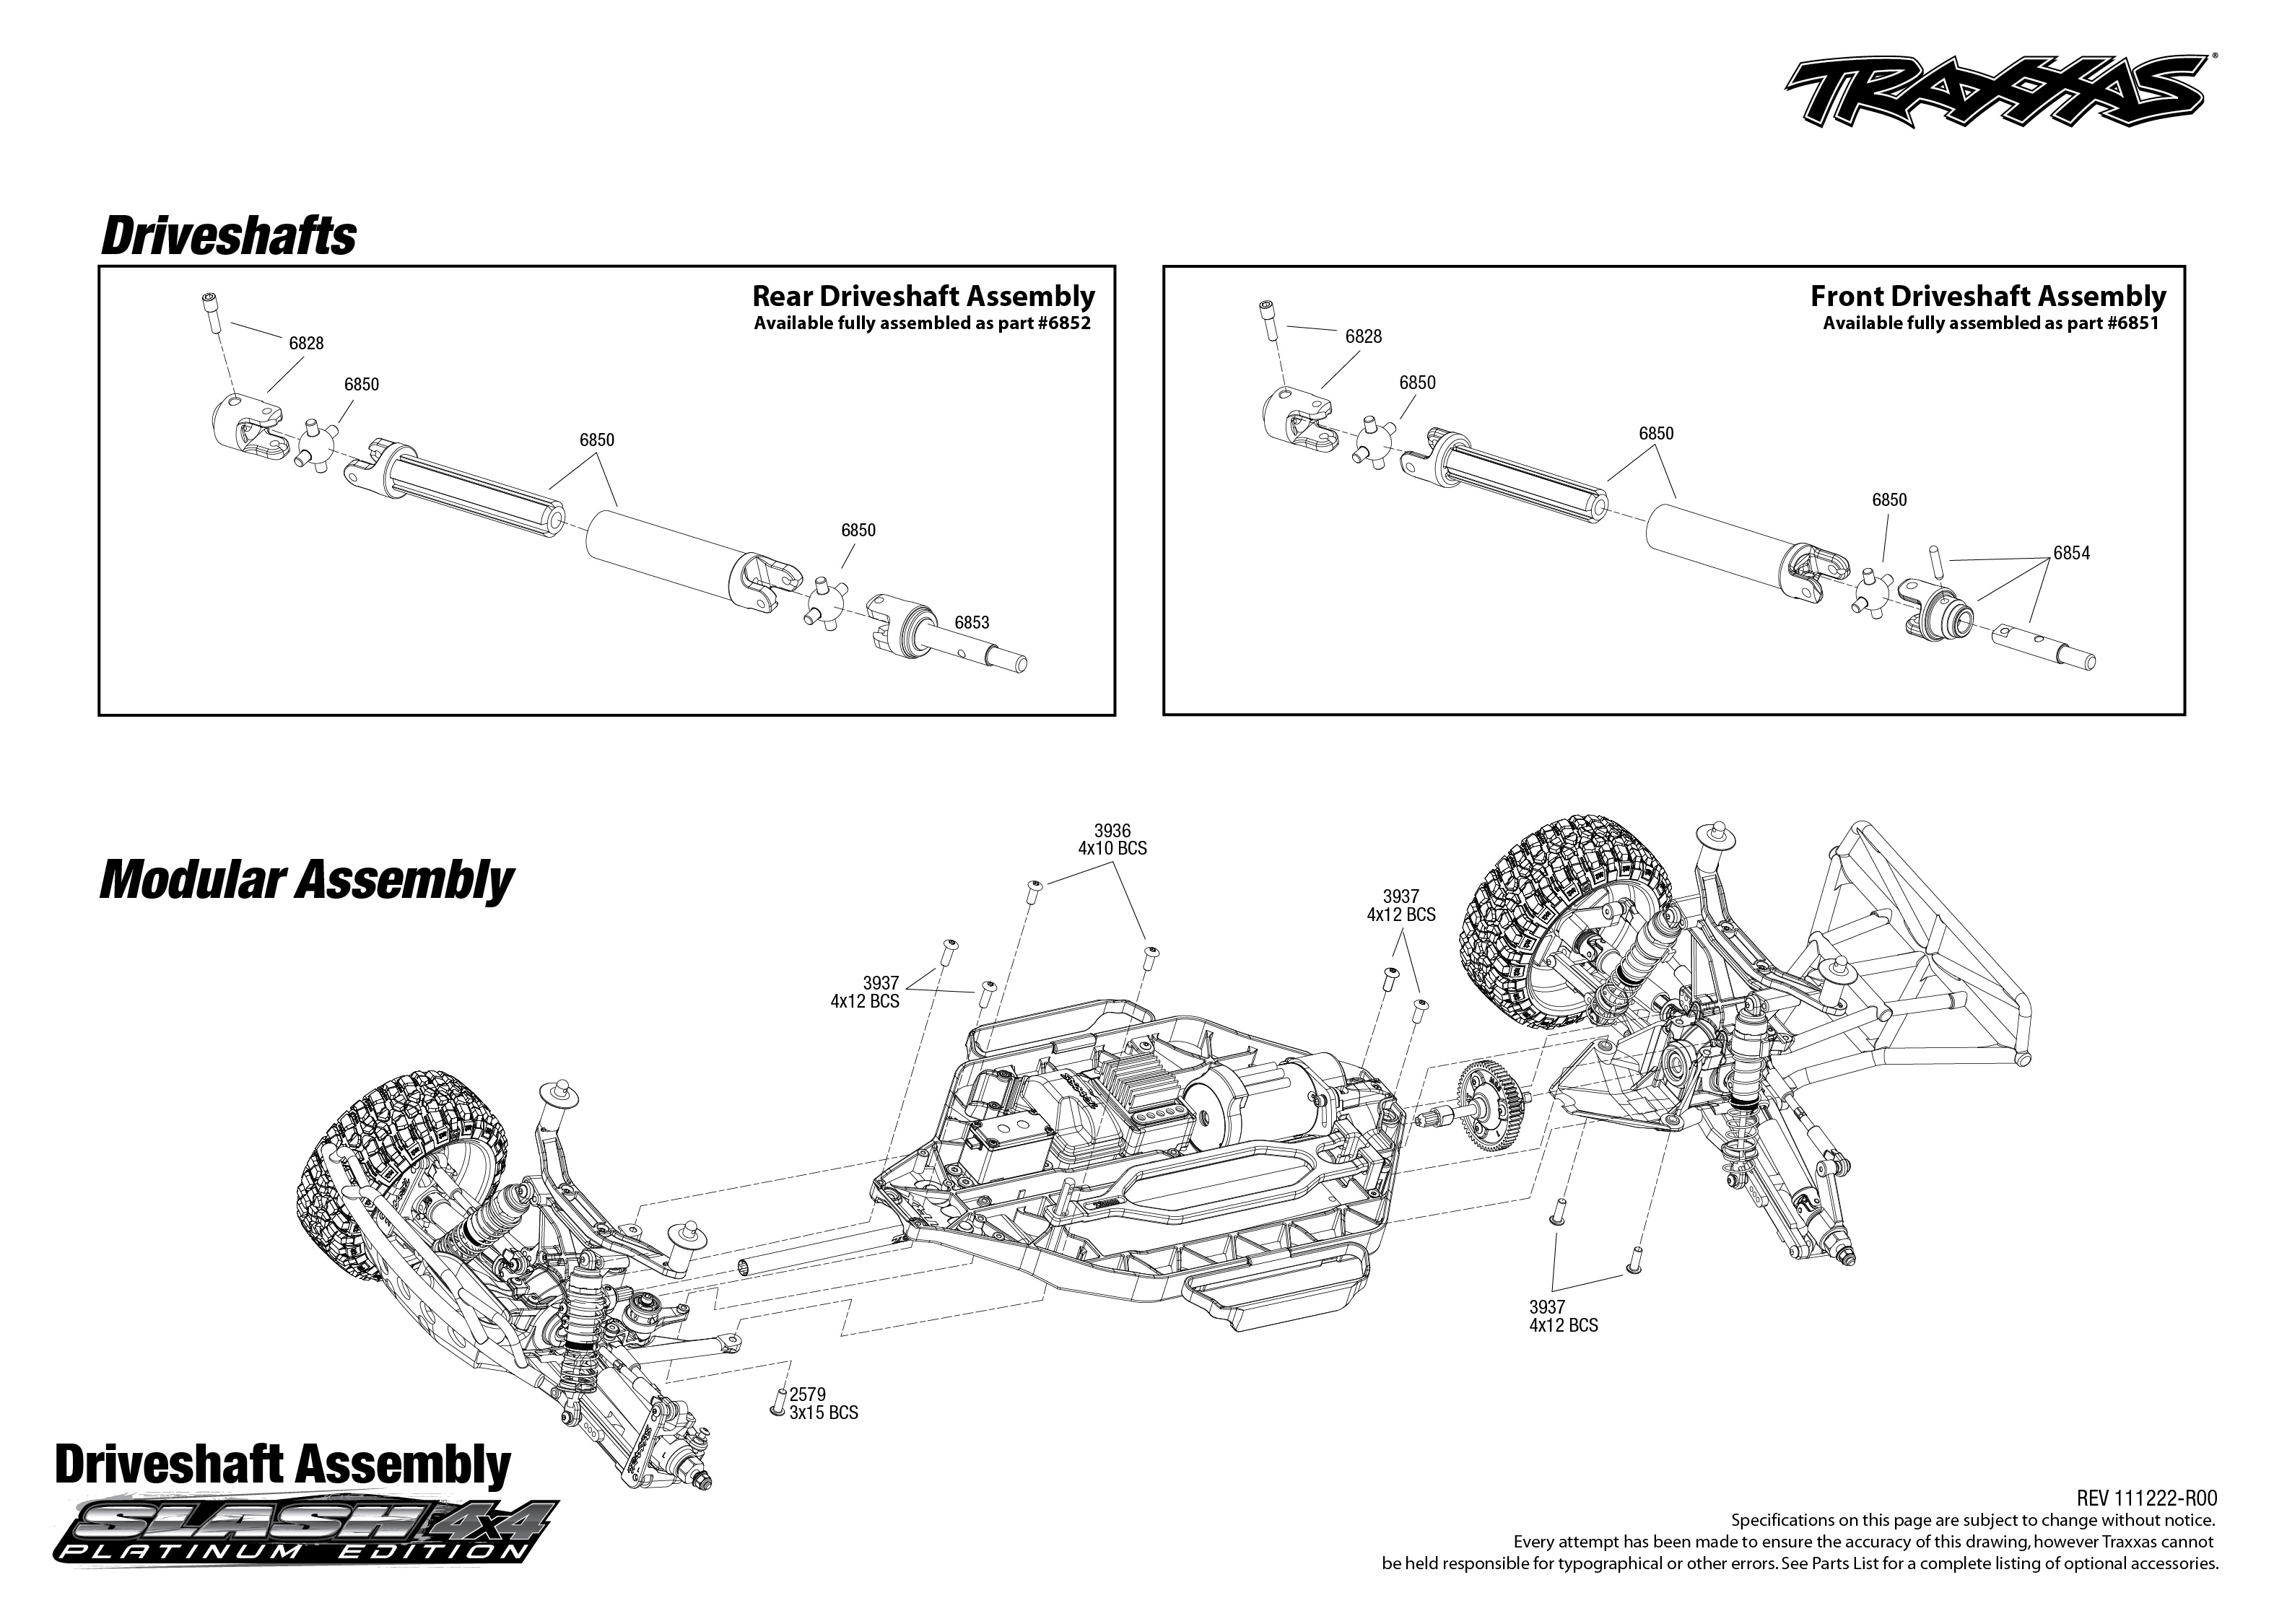 6804 driveshafts exploded view slash 4x4 platinum traxxas rh traxxas com traxxas skully parts diagram traxxas stampede parts diagram